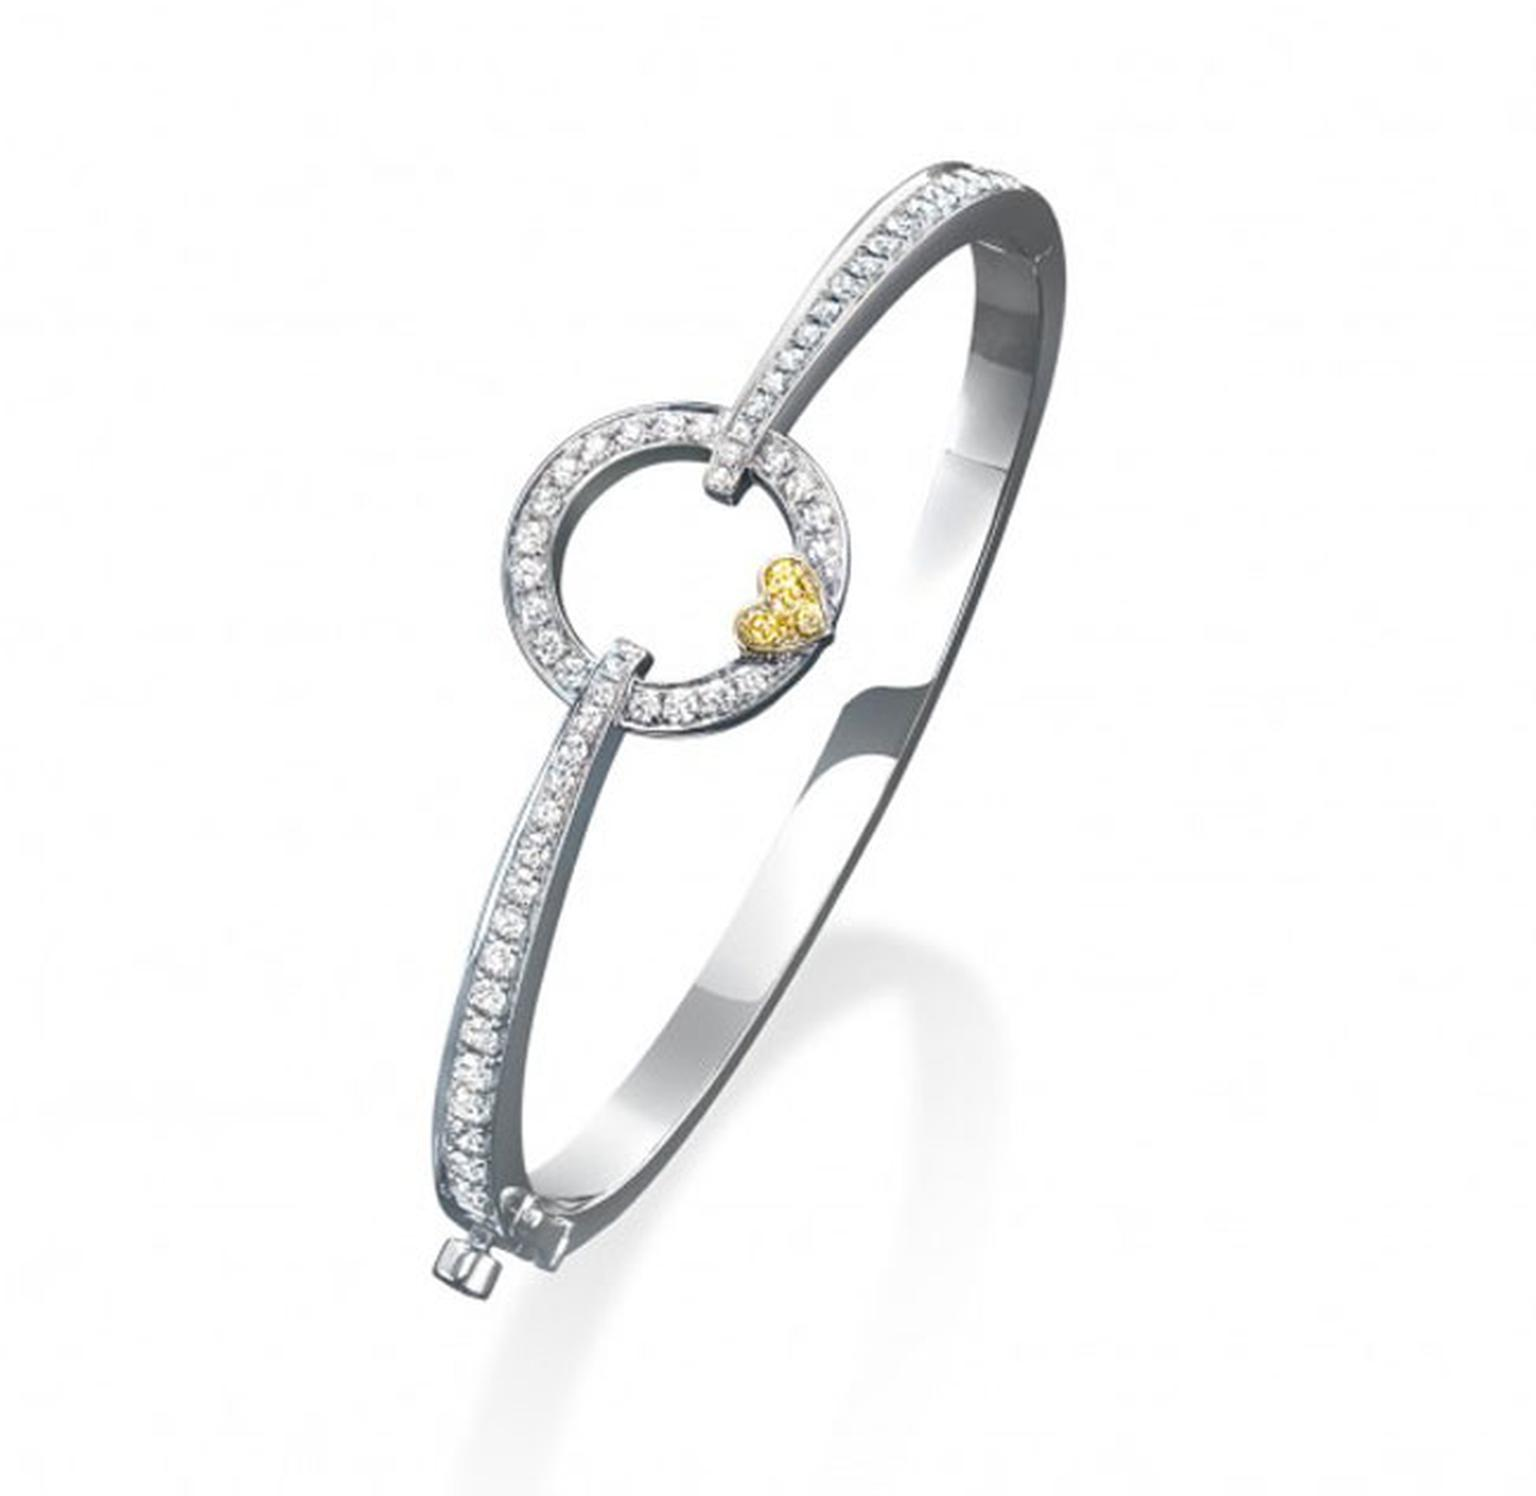 Boodles-GREAT-Bangle-Diamond.jpg